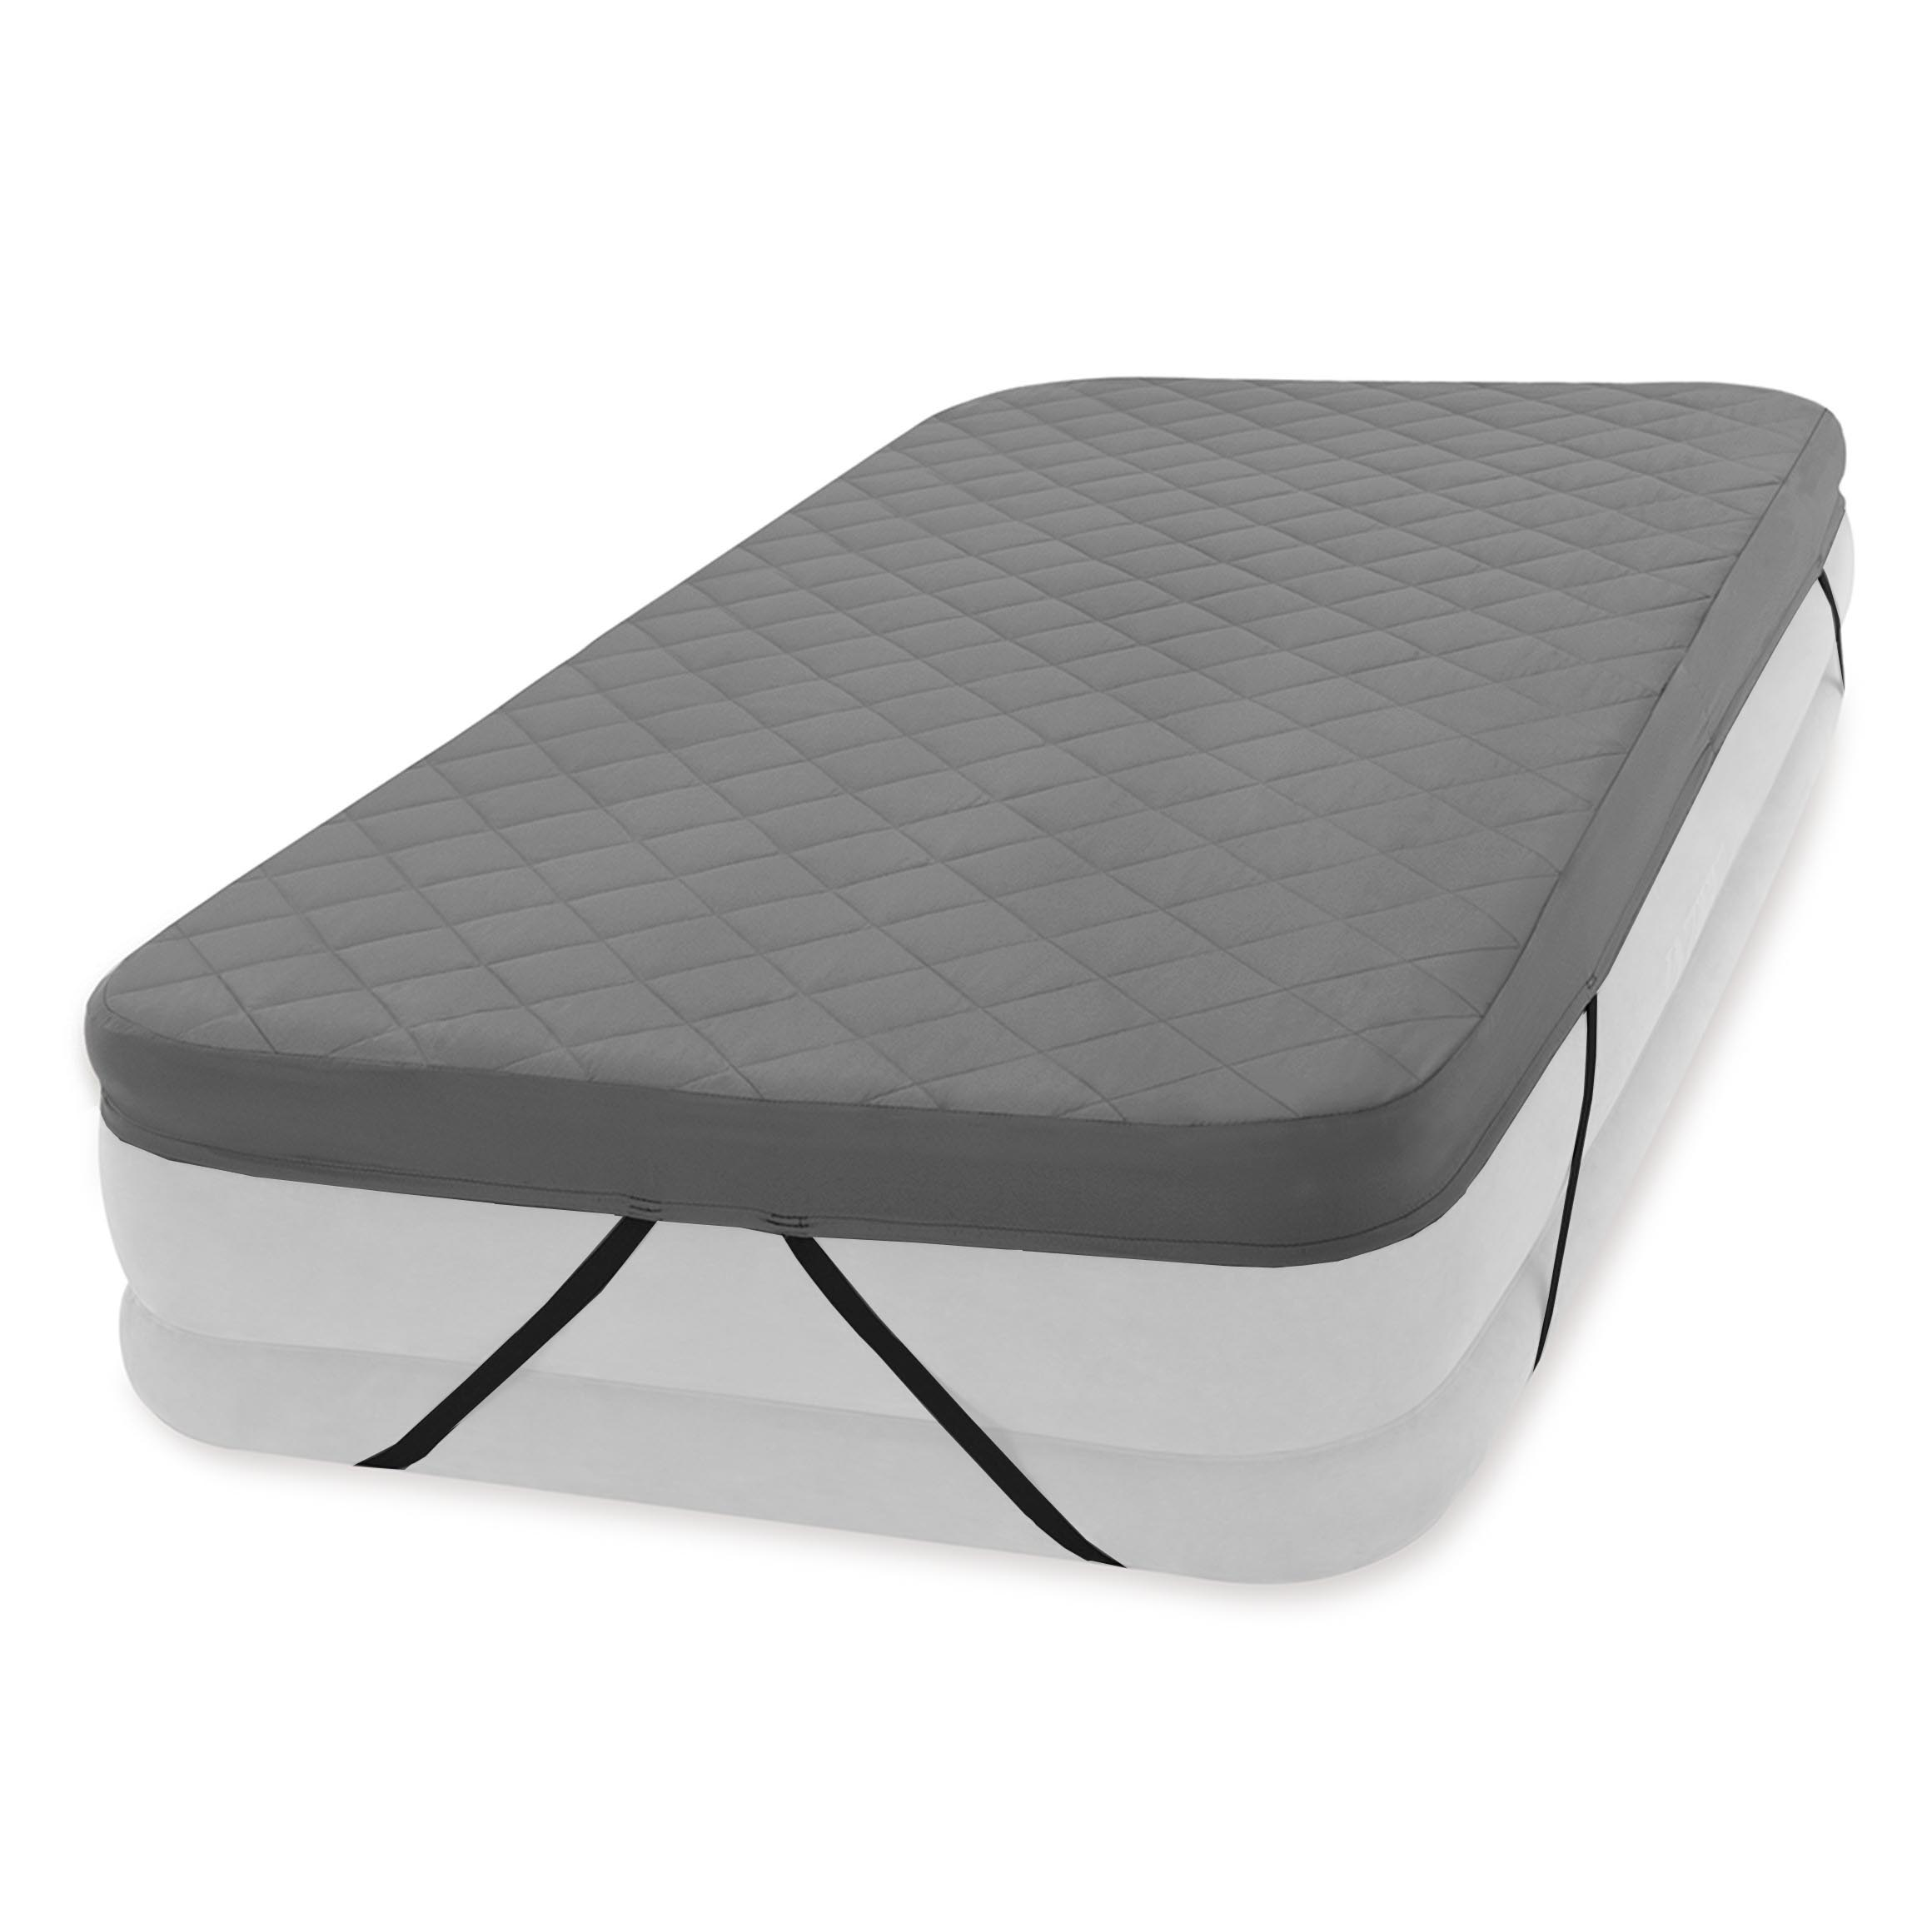 high intex airbed mattress deluxe durabeam single com twin air walmart ip